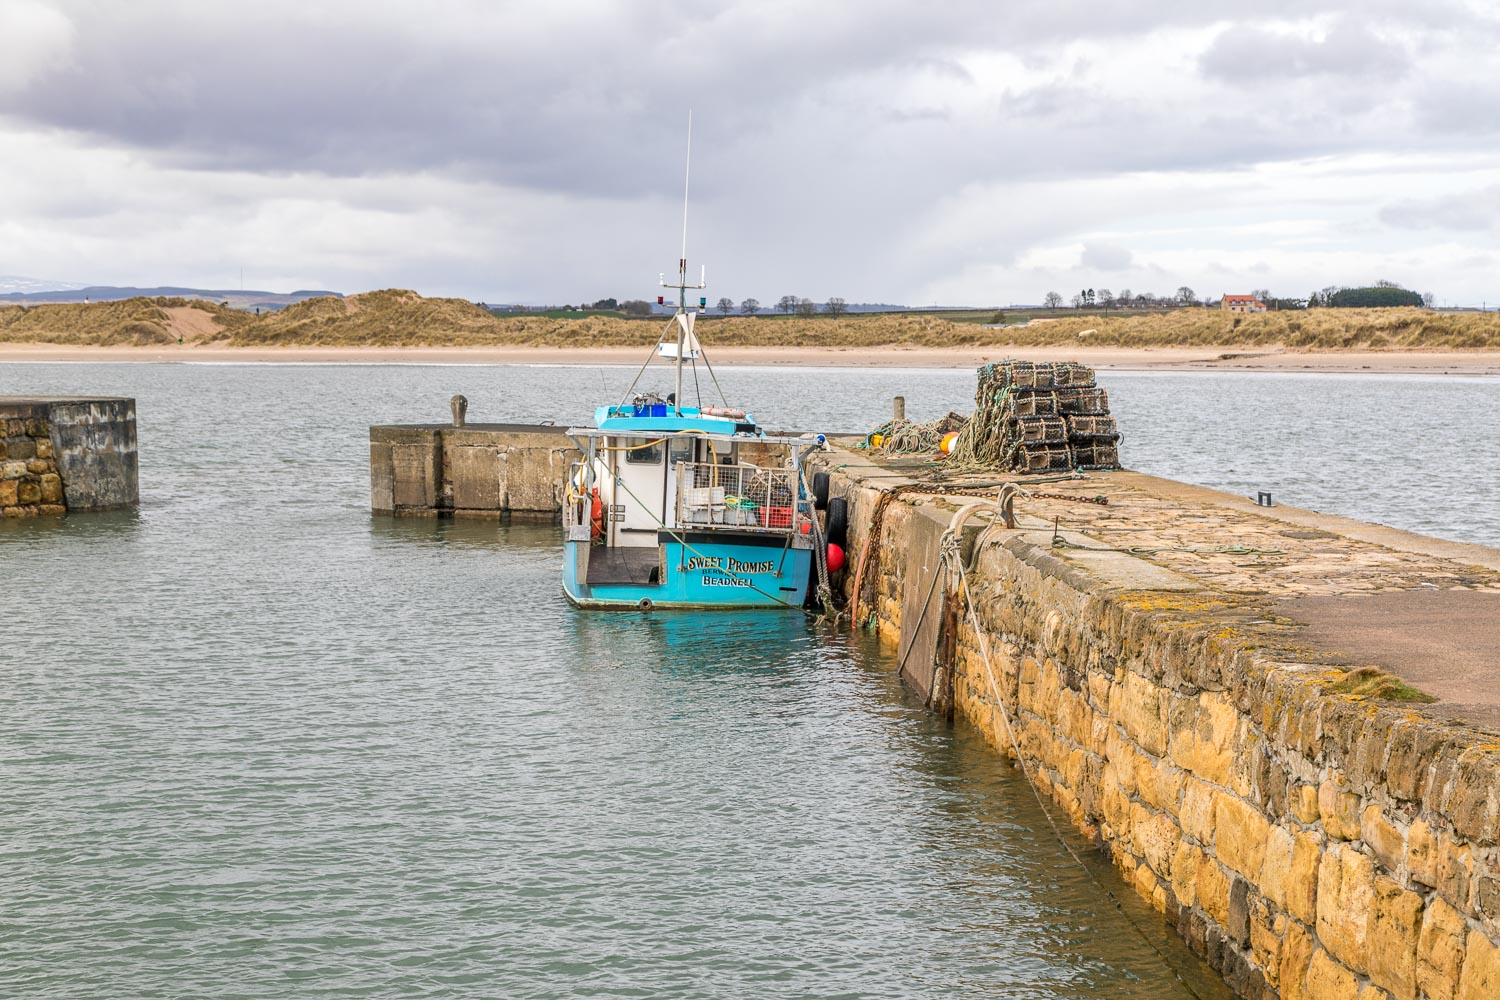 Beadnelll Harbour